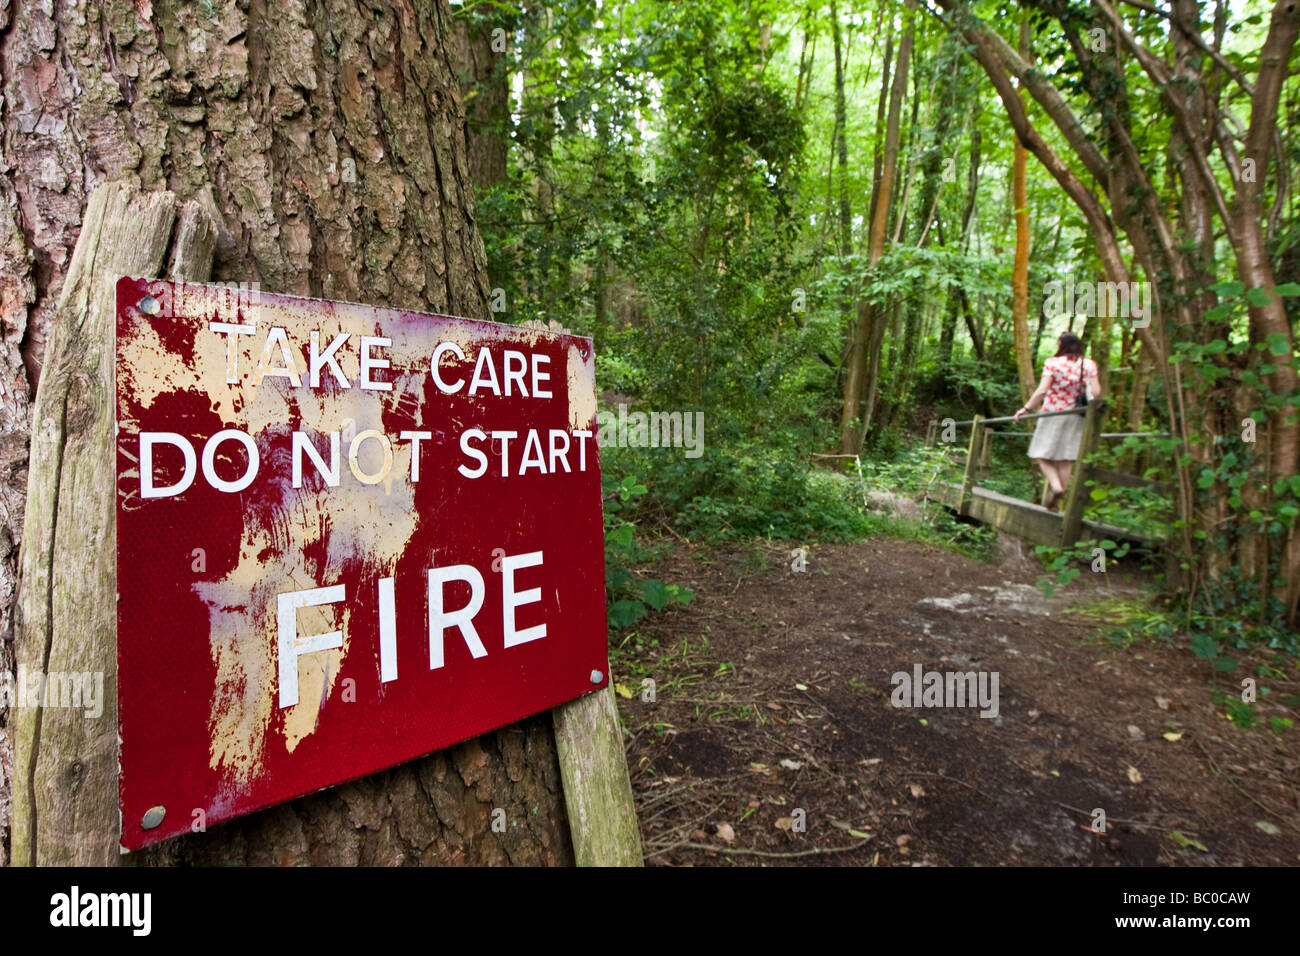 Woman walks past a sign that says Take Care Do Not Start Fire on a forest walk - Stock Image